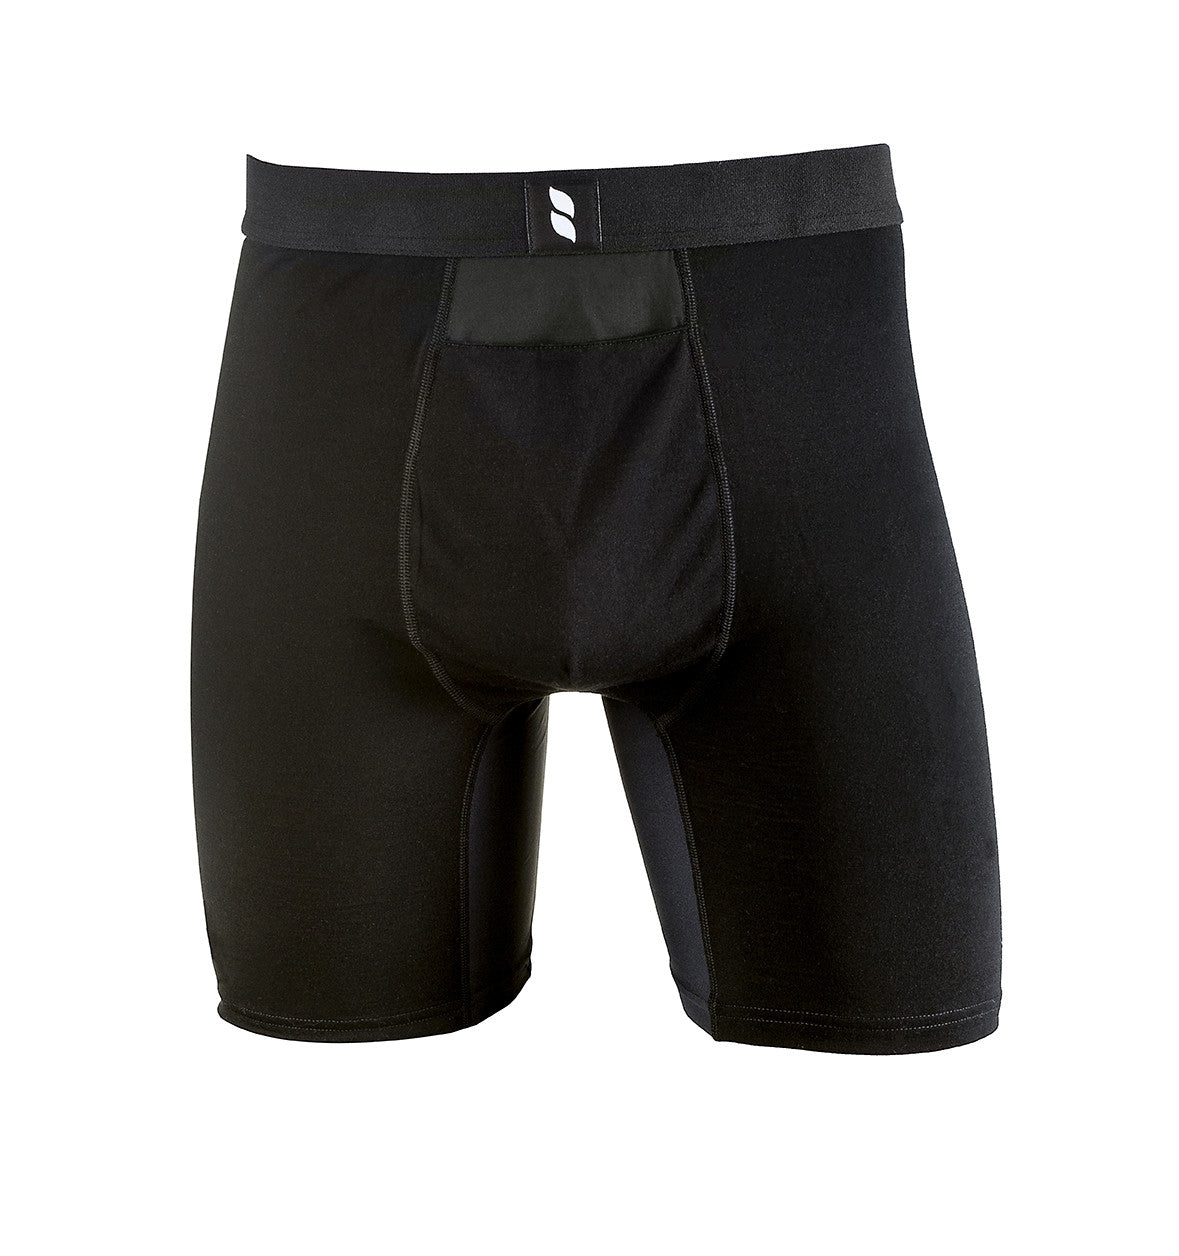 b18351b7b751 ... Merino Wool Boxer Briefs for Men | Kentwool | Made in the USA. Black